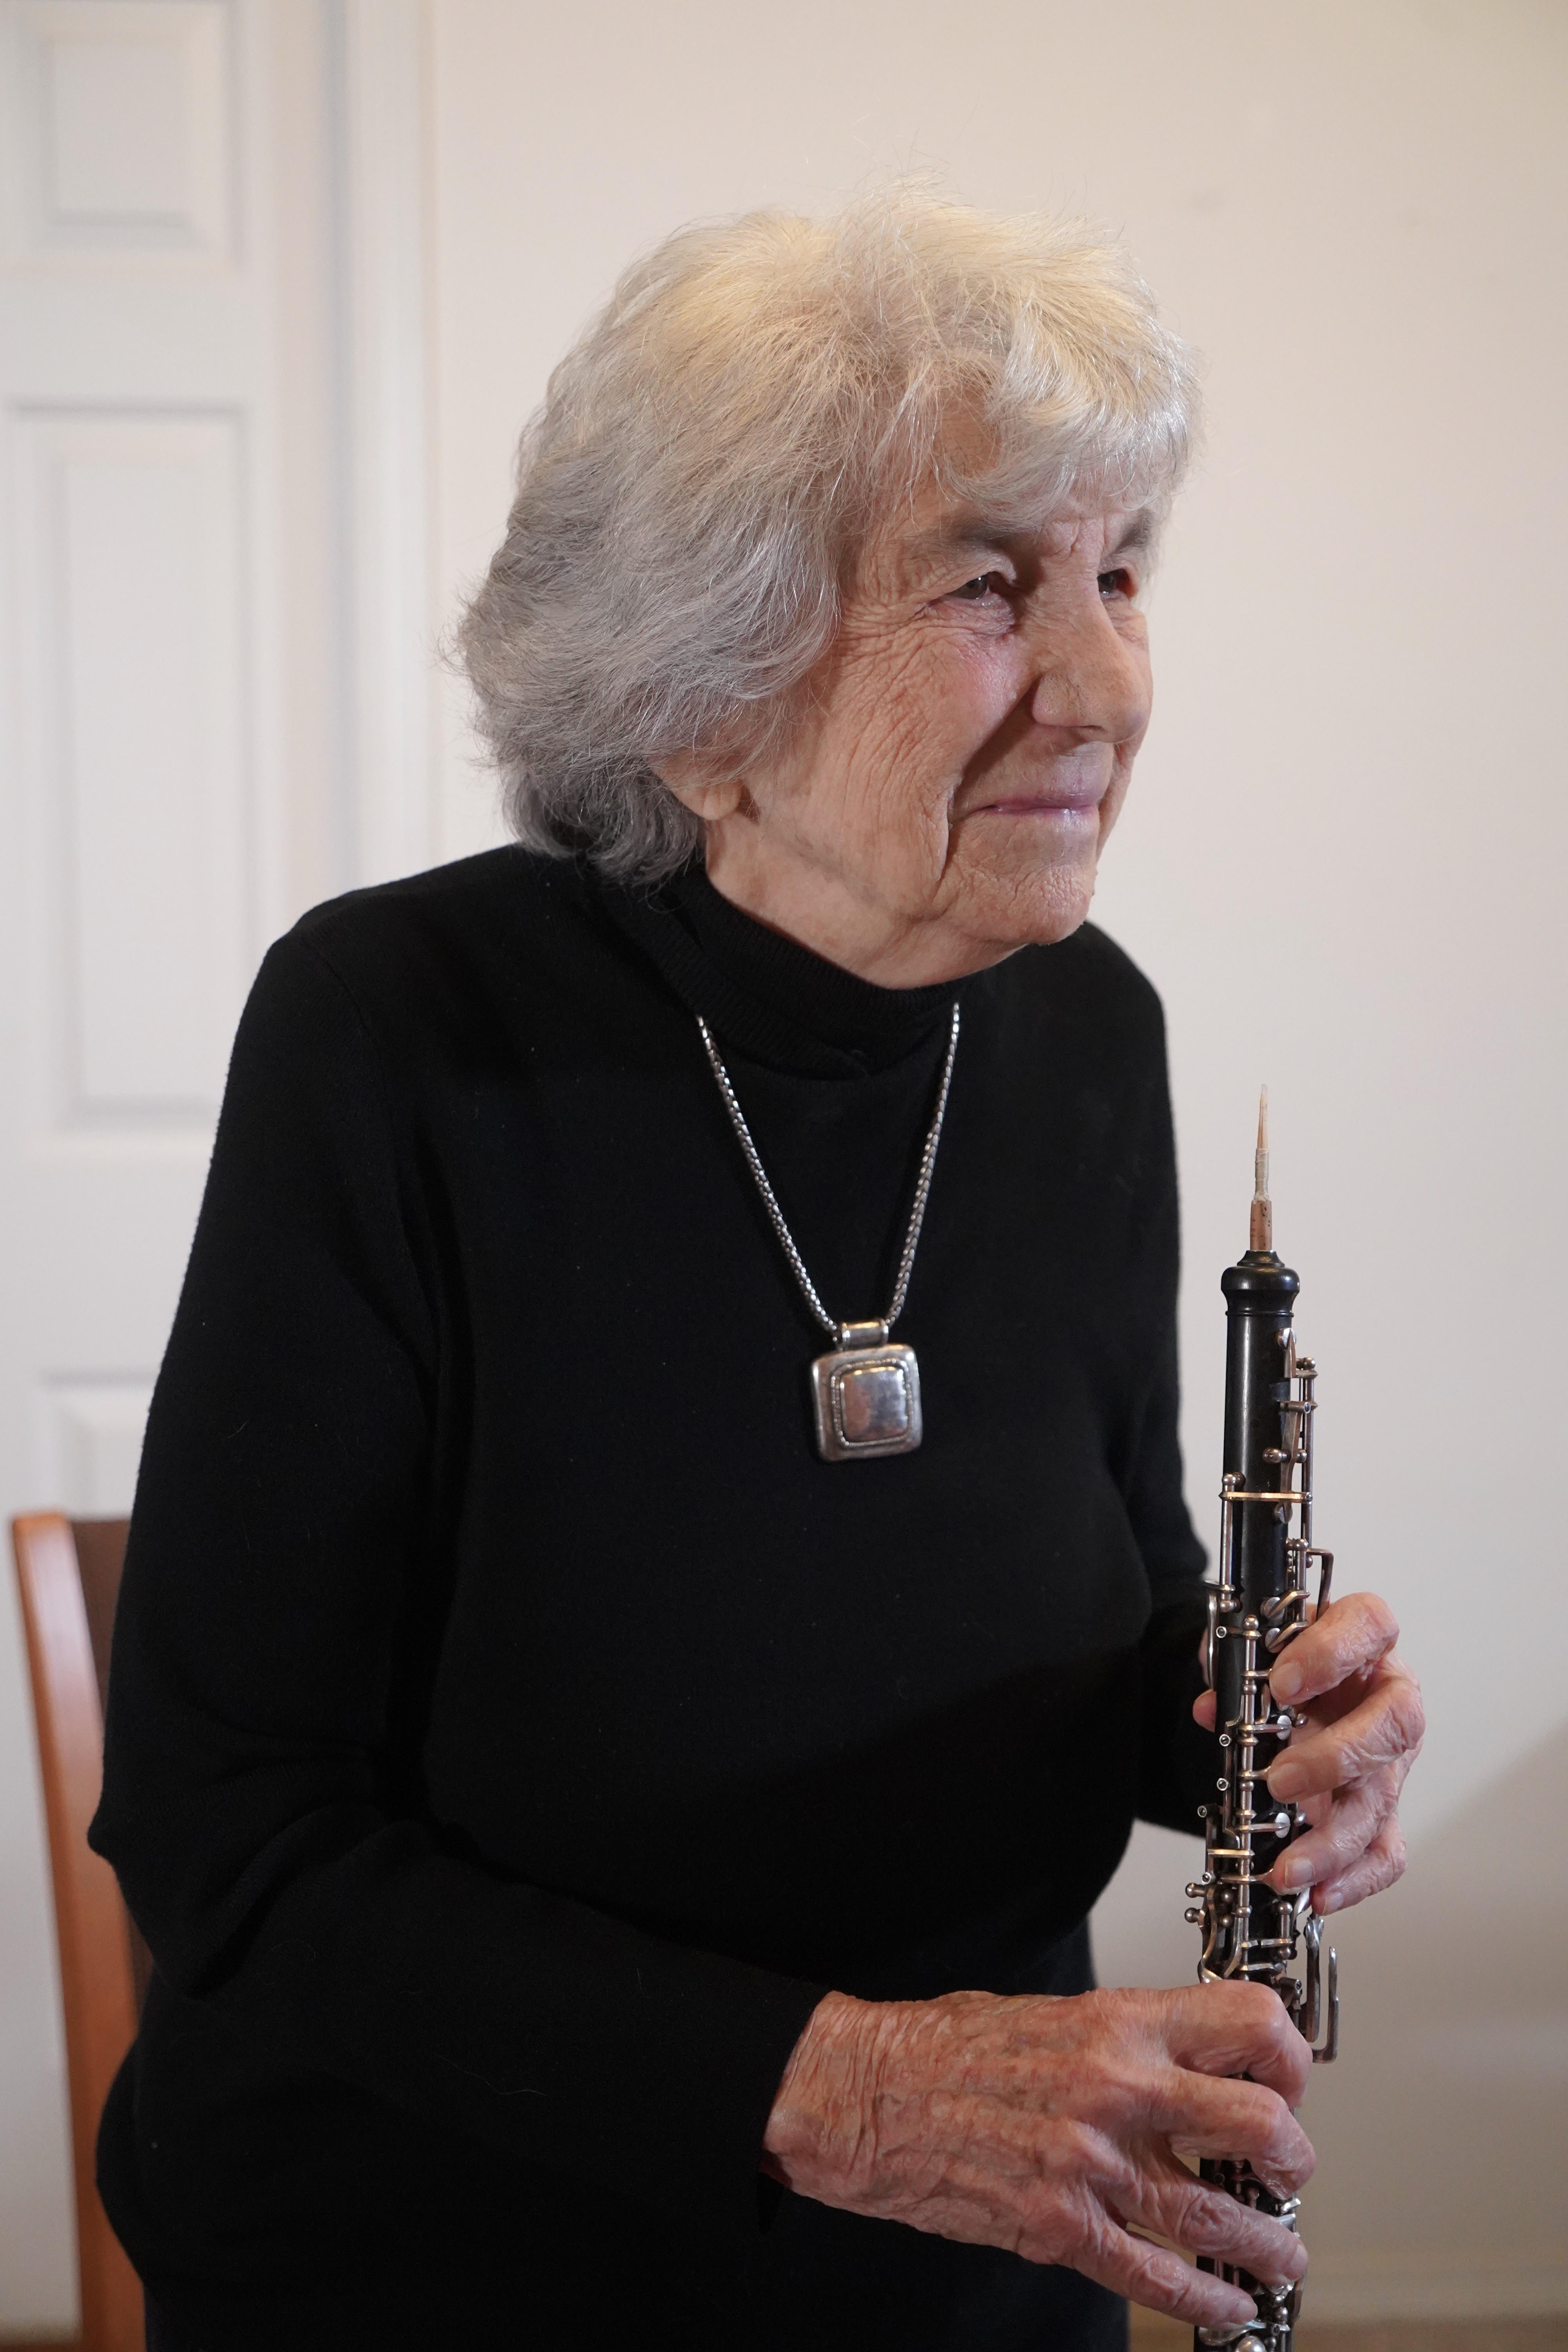 This trailblazing oboist is 100 today and still playing